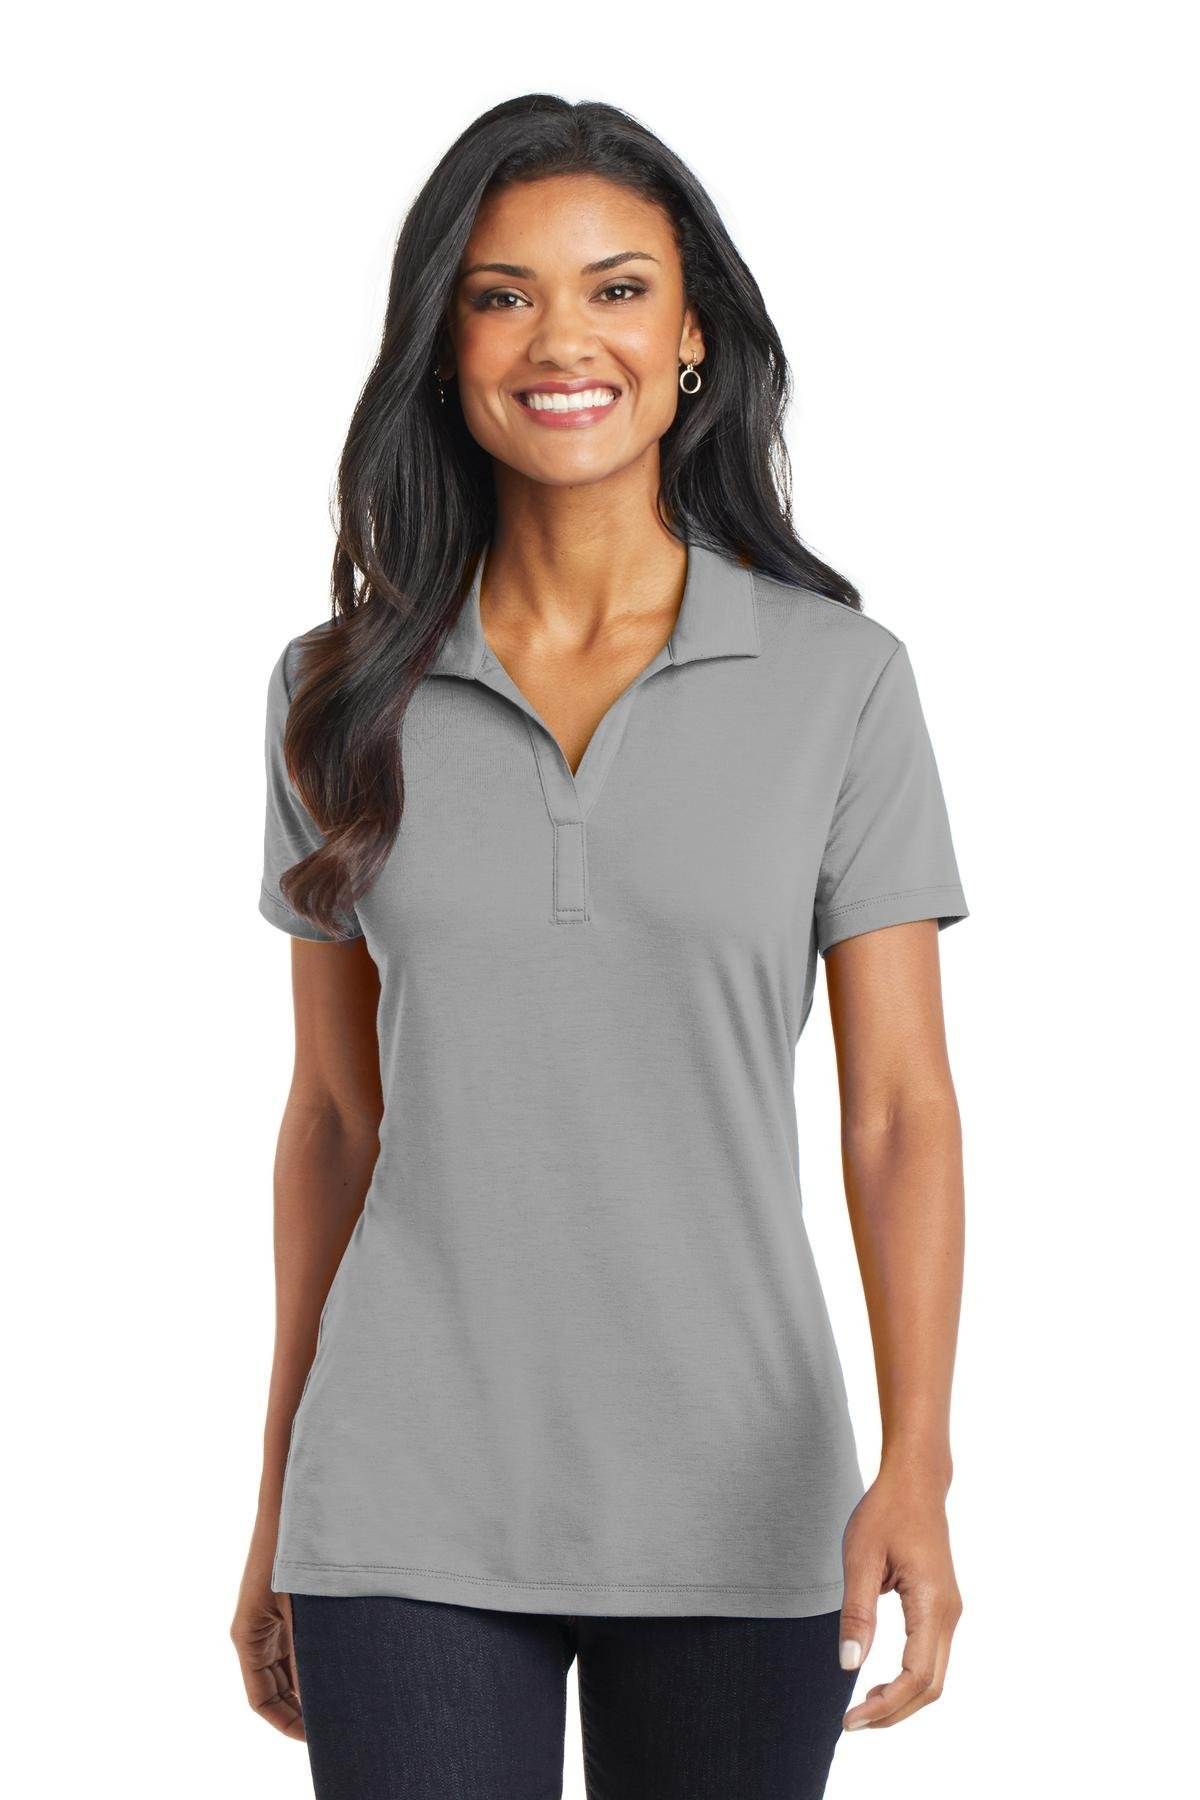 Port Authority Women's Cotton Touch Performance Polo_Frost Grey_Large